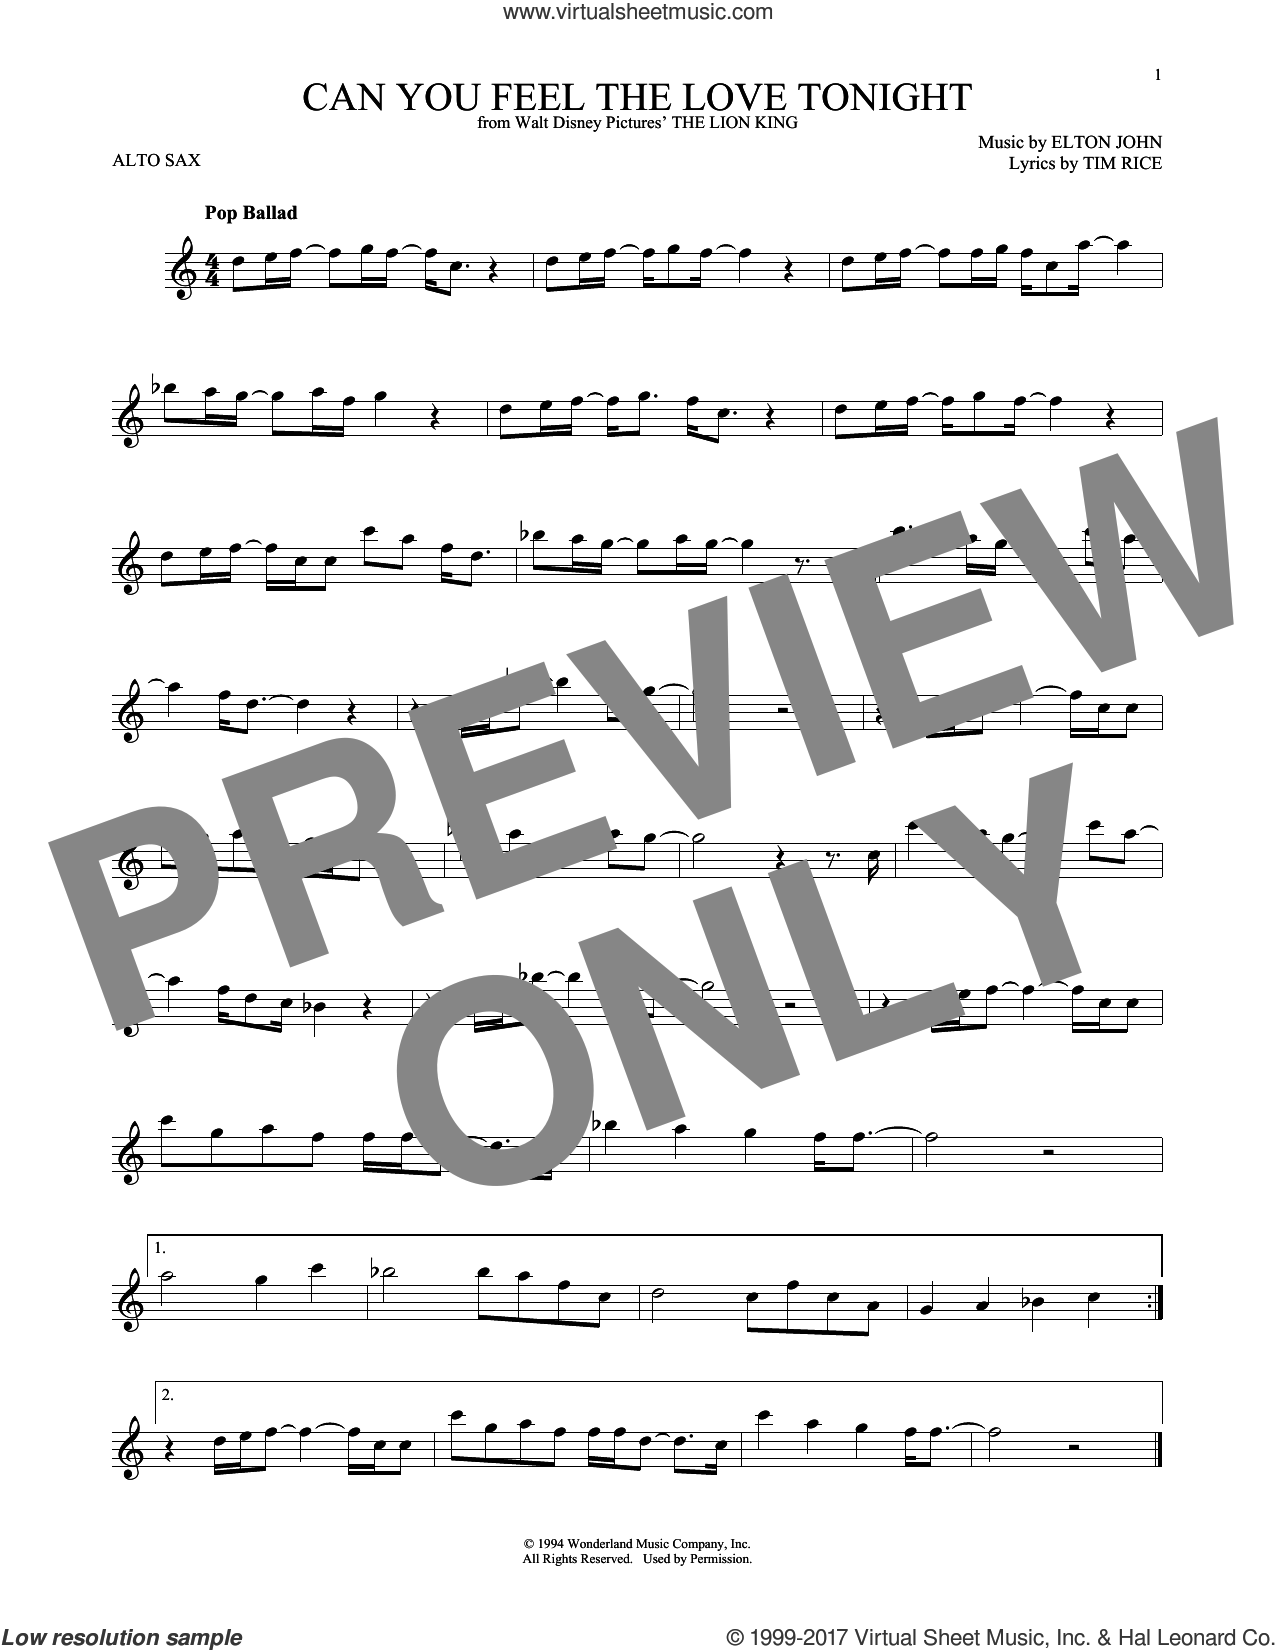 Can You Feel The Love Tonight sheet music for alto saxophone solo ( Sax) by Elton John and Tim Rice, intermediate alto saxophone ( Sax)